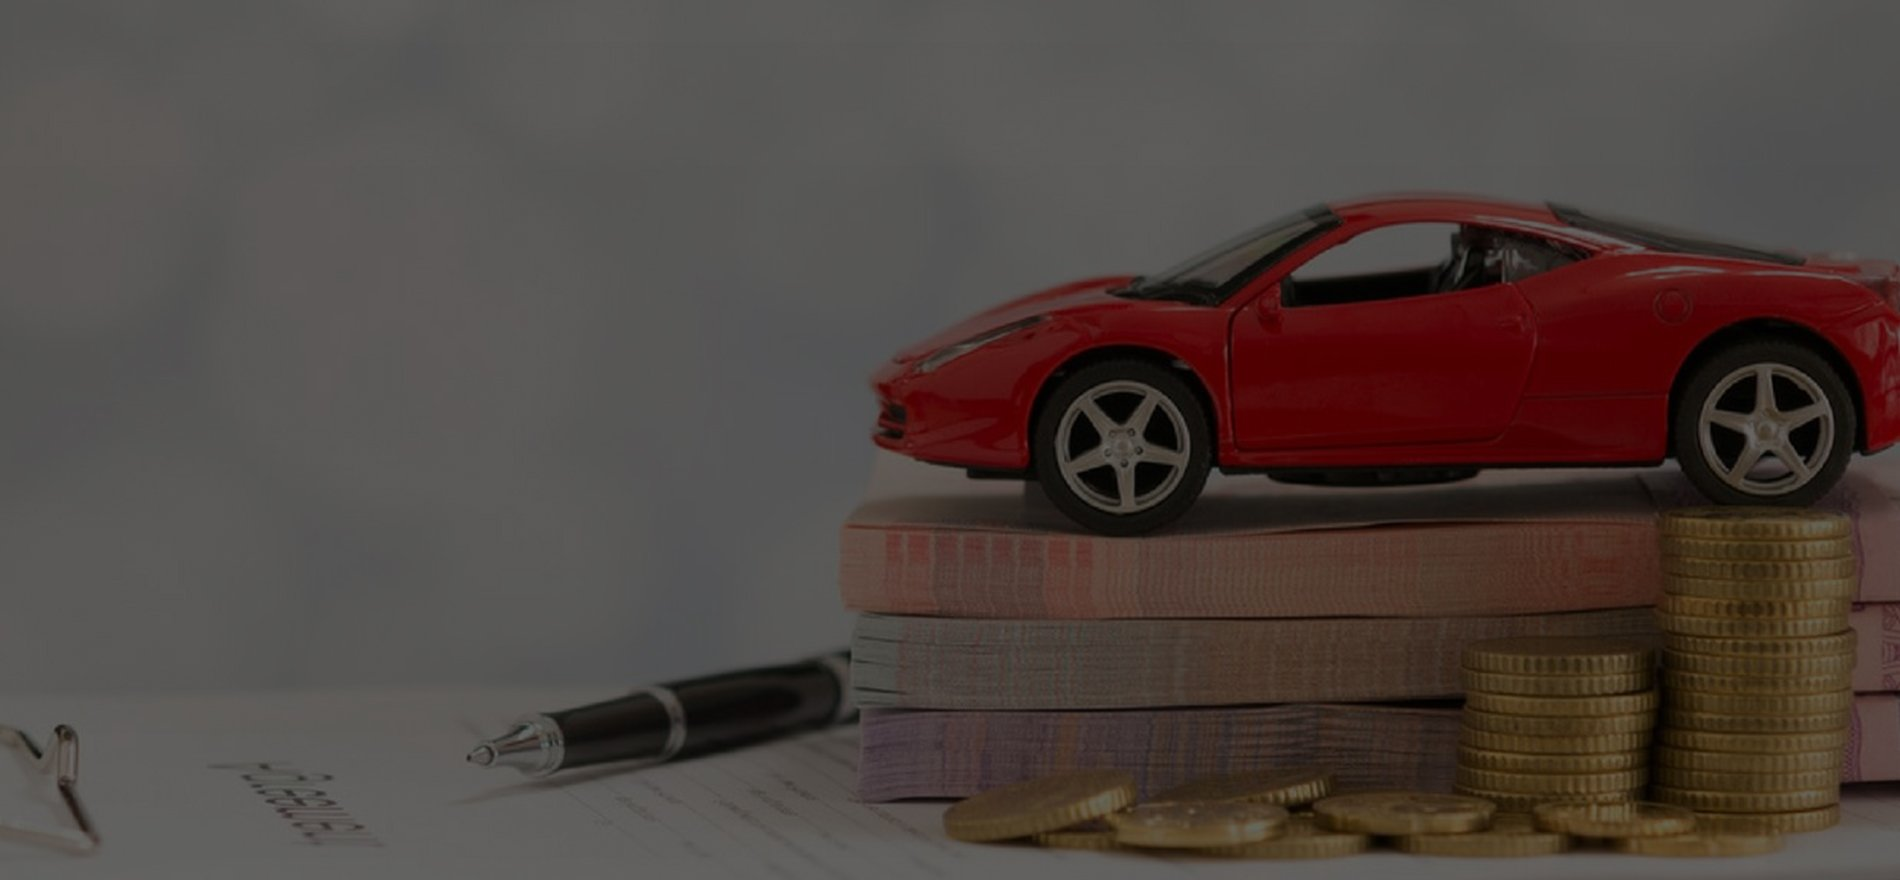 High Risk Auto Insurance >> High Risk Car Insurance Affordable Auto Insurance For High Risk Drivers